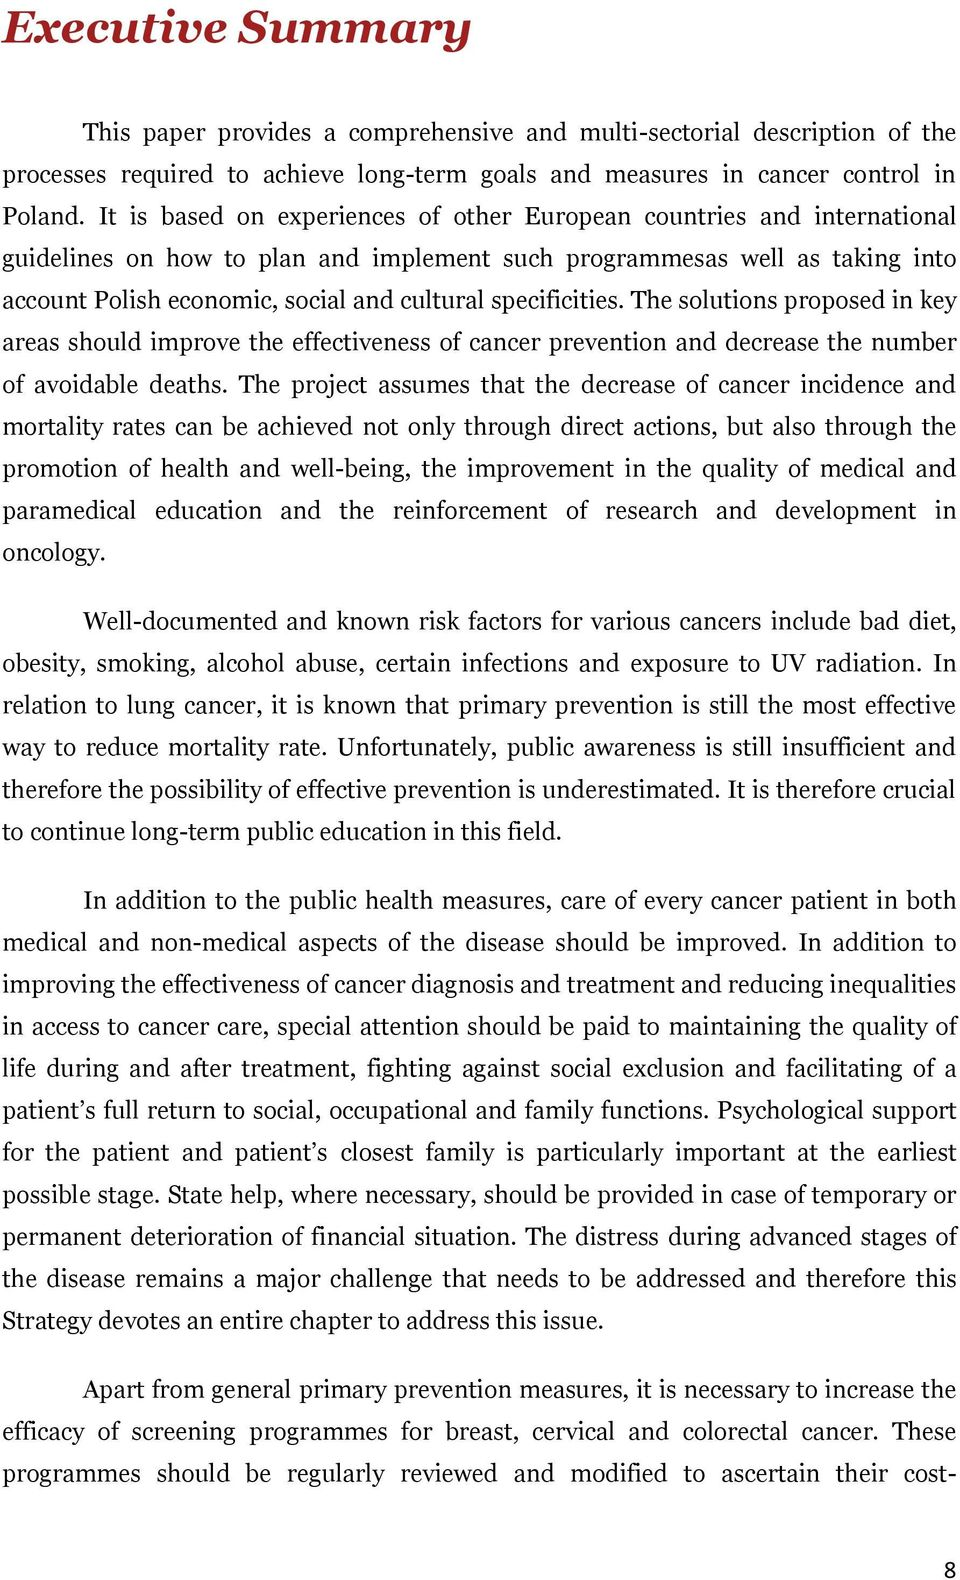 specificities. The solutions proposed in key areas should improve the effectiveness of cancer prevention and decrease the number of avoidable deaths.